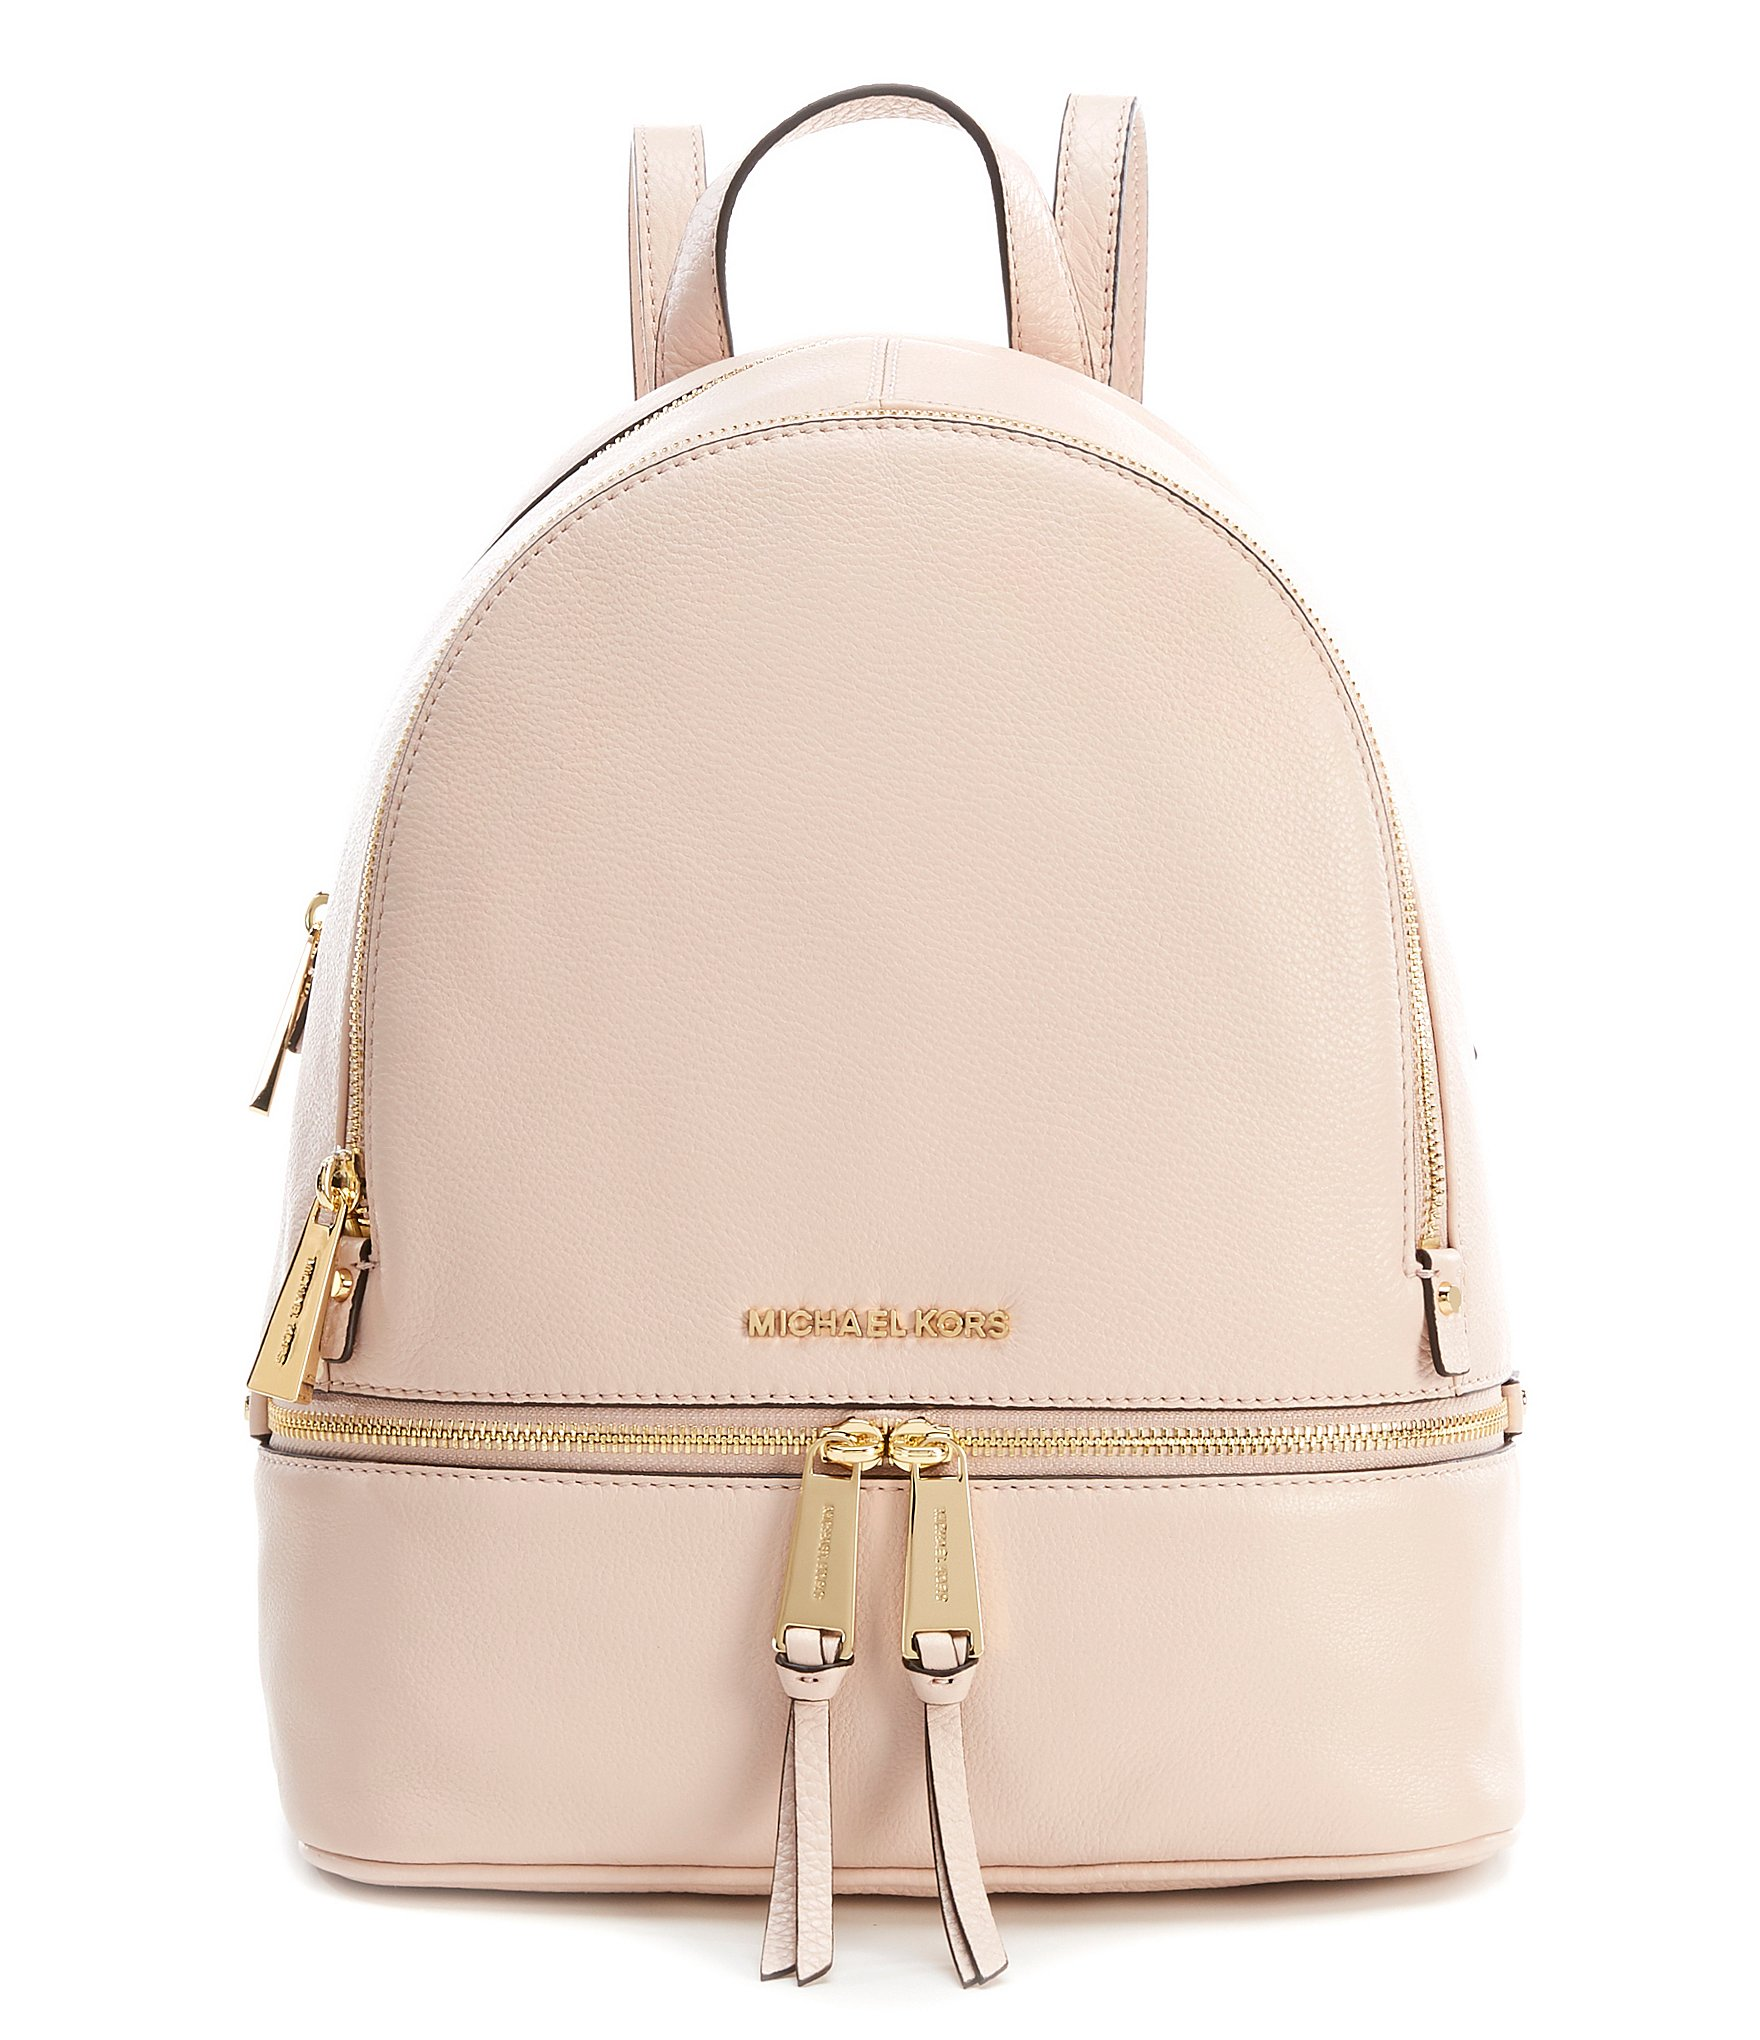 MICHAEL Michael Kors Rhea Zip Medium Pebble Leather Backpack  85287c5f2df